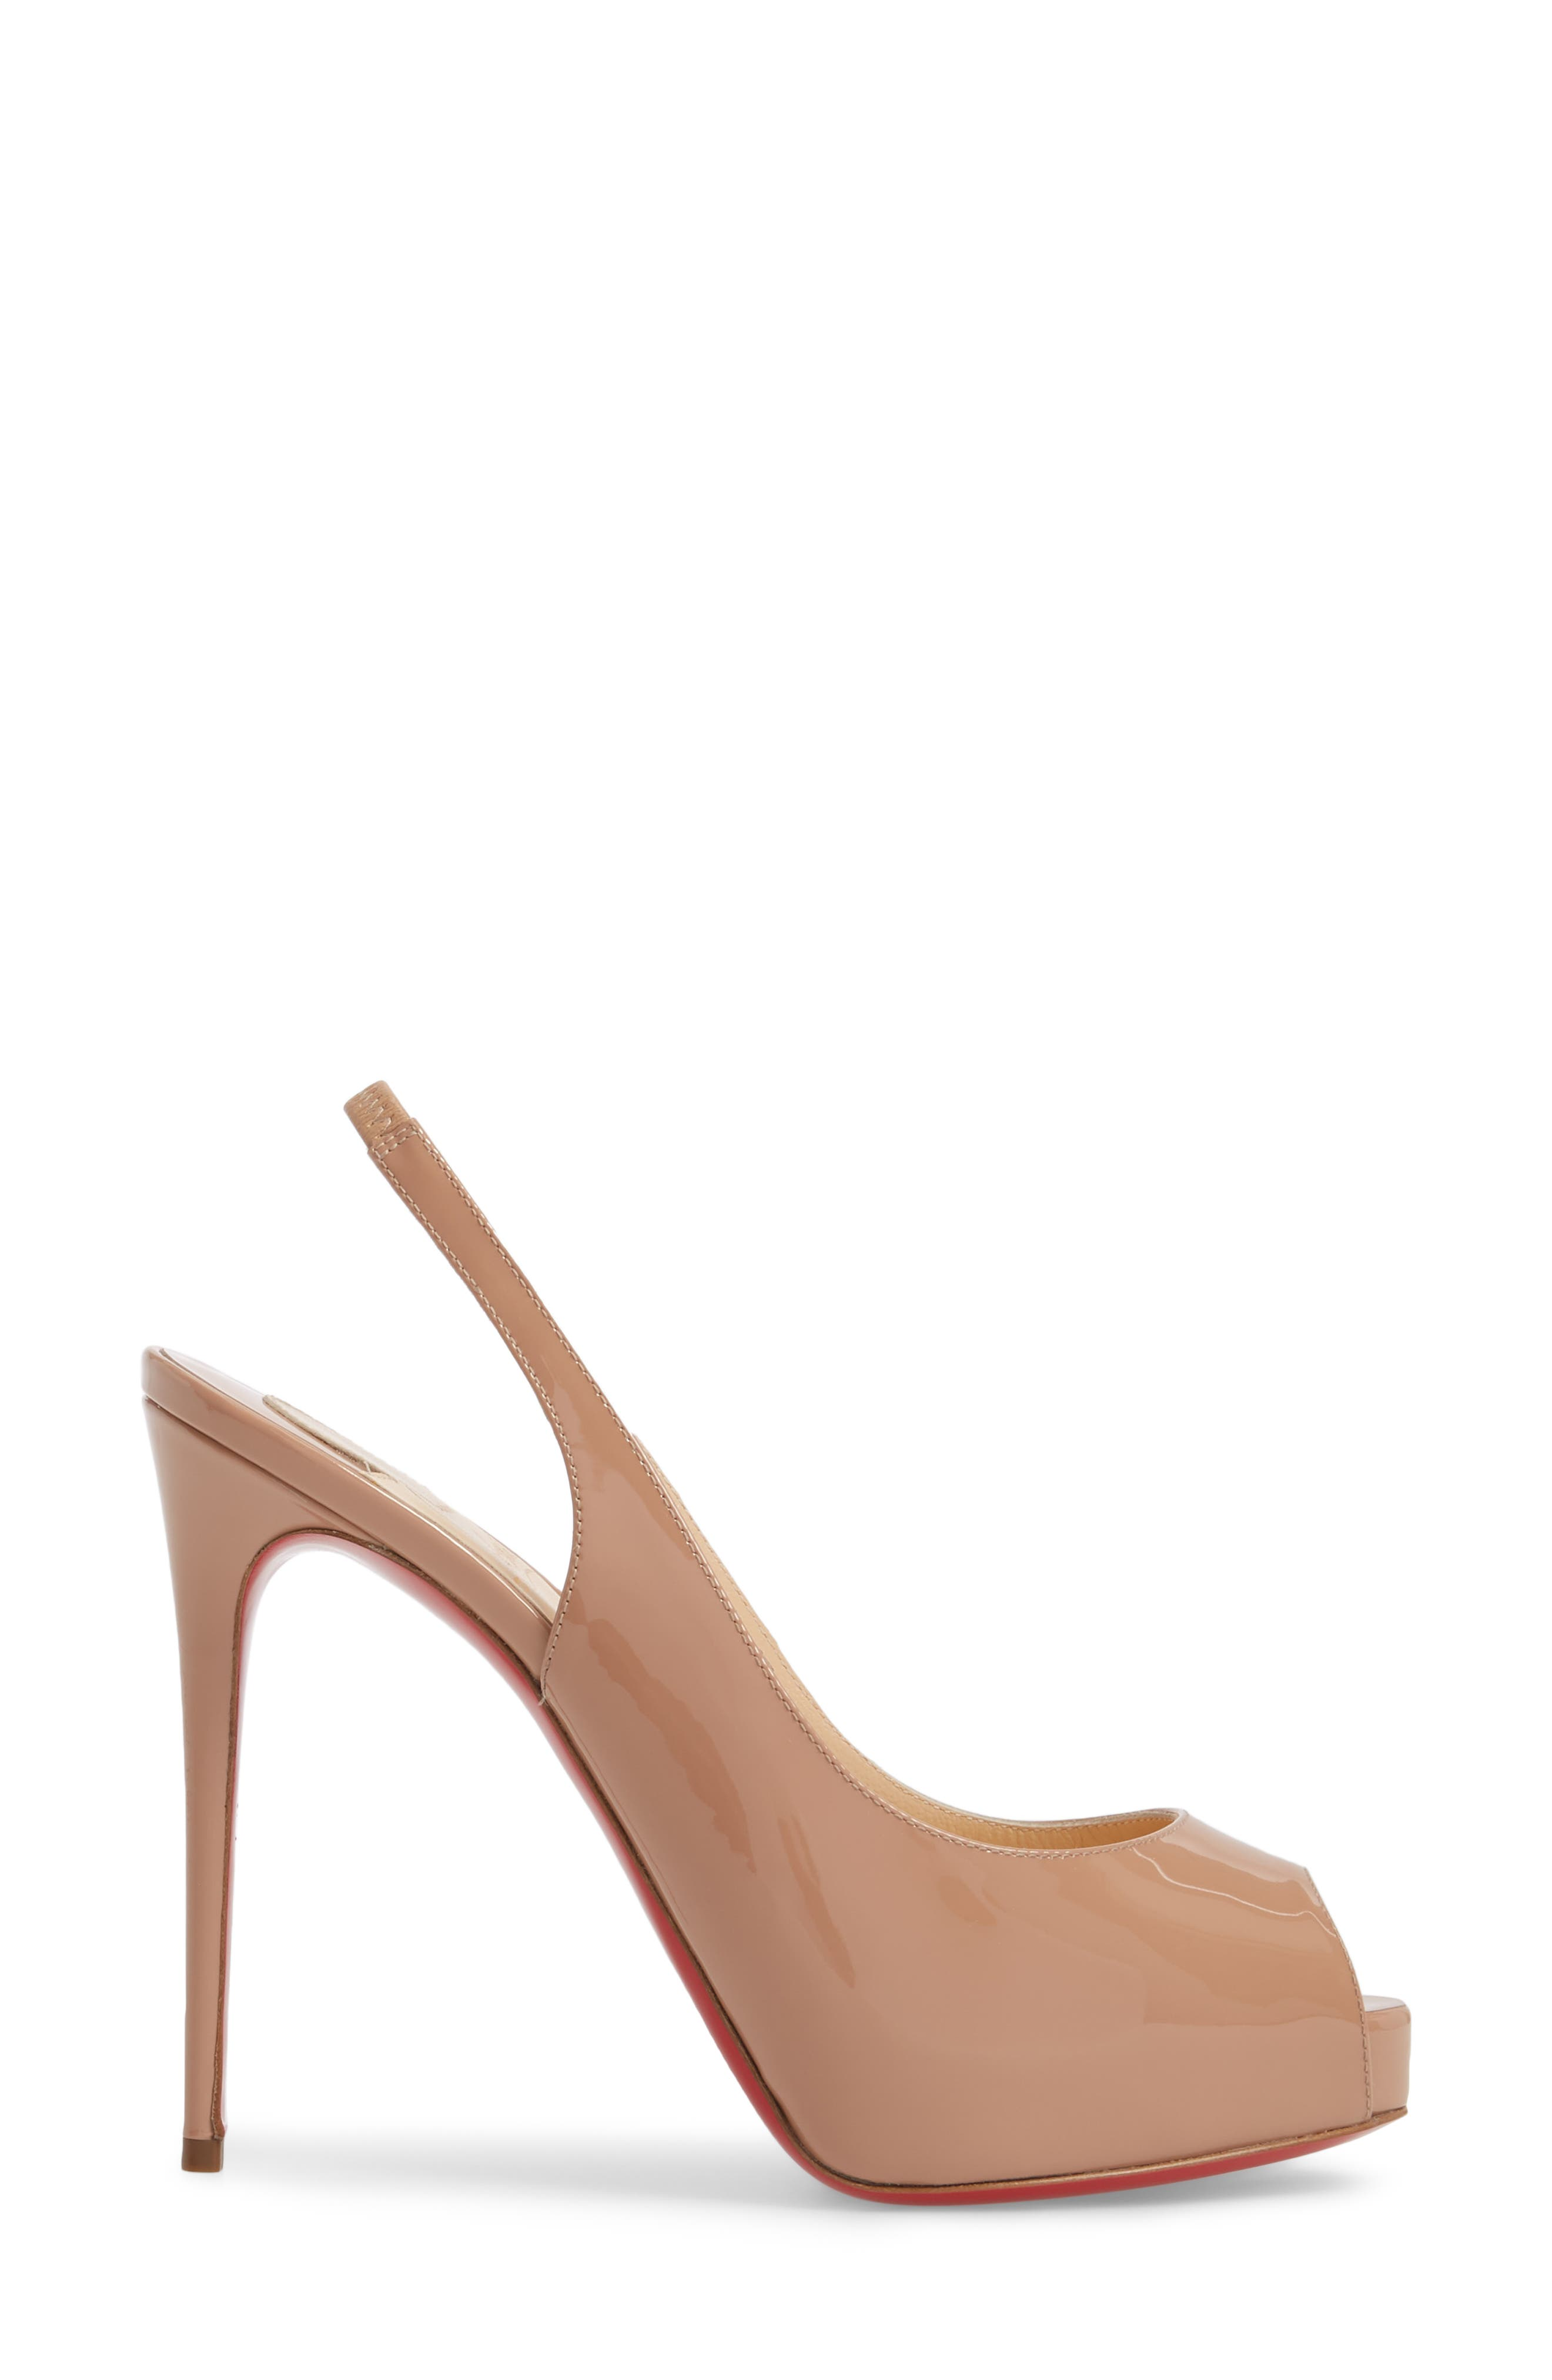 CHRISTIAN LOUBOUTIN,                             Private Number Peep Toe Pump,                             Alternate thumbnail 3, color,                             NUDE